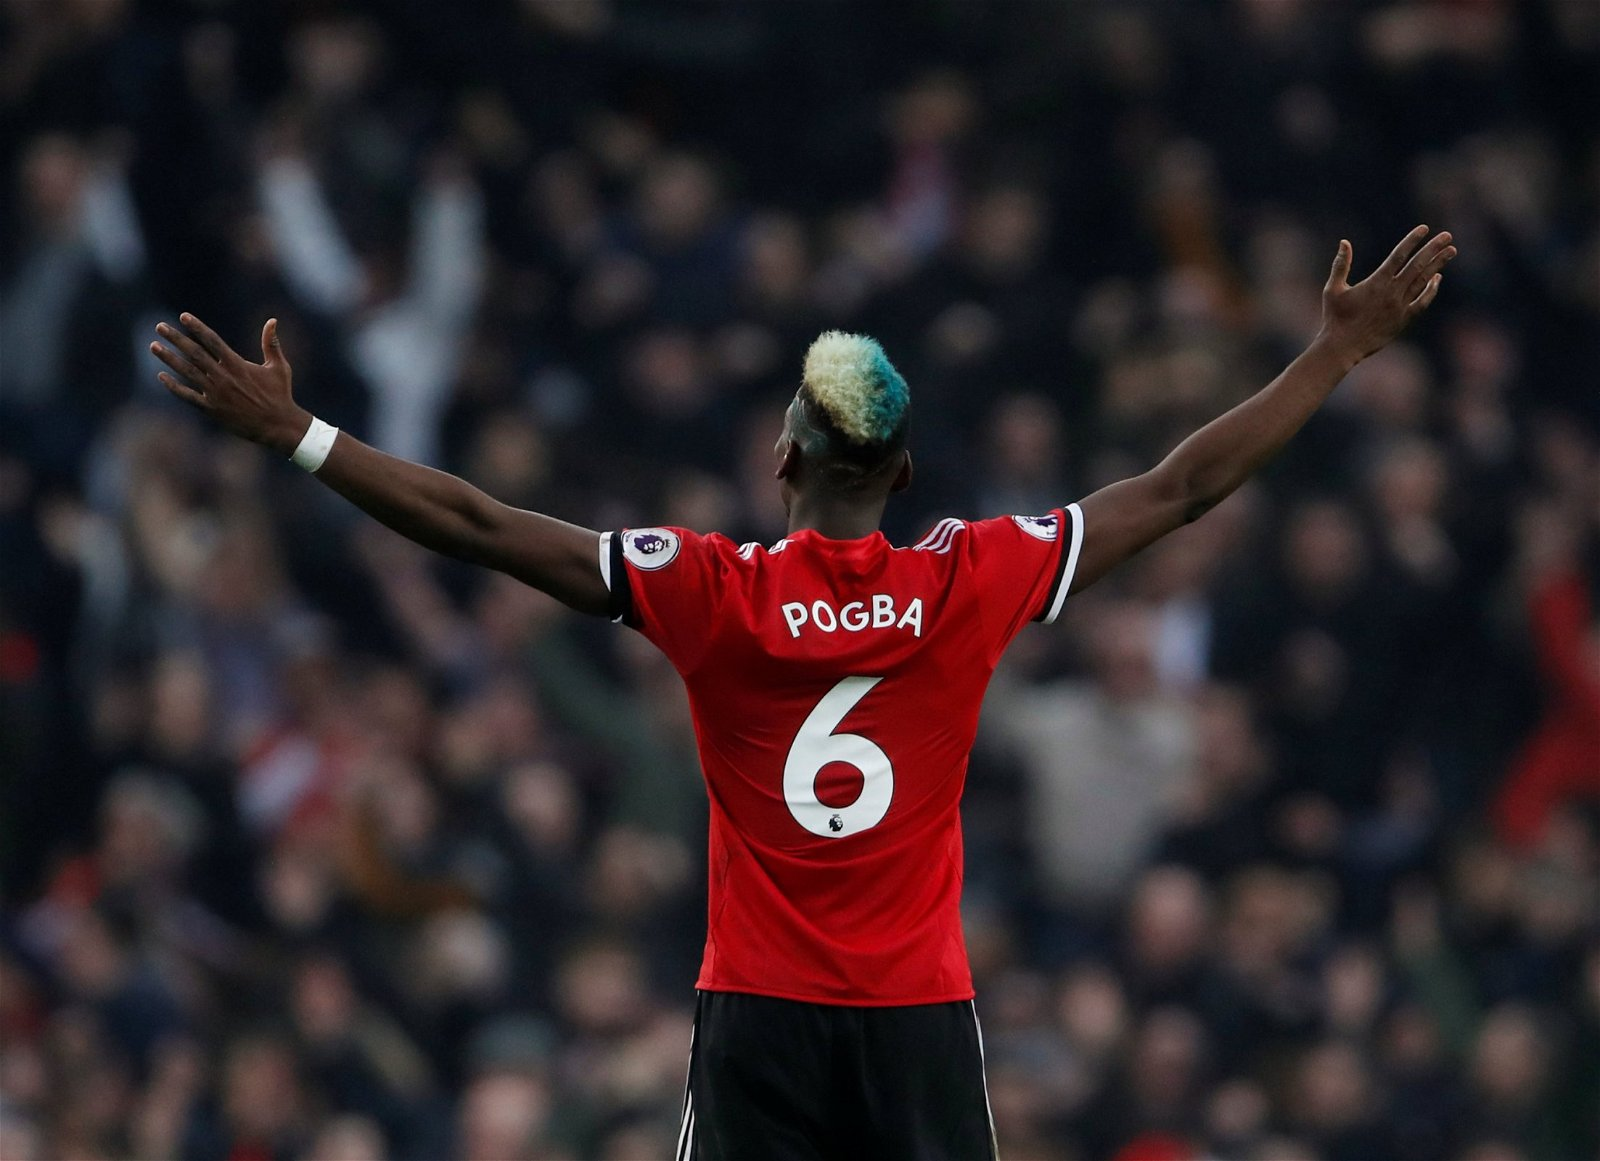 Paul Pogba celebrates winning against Manchester City